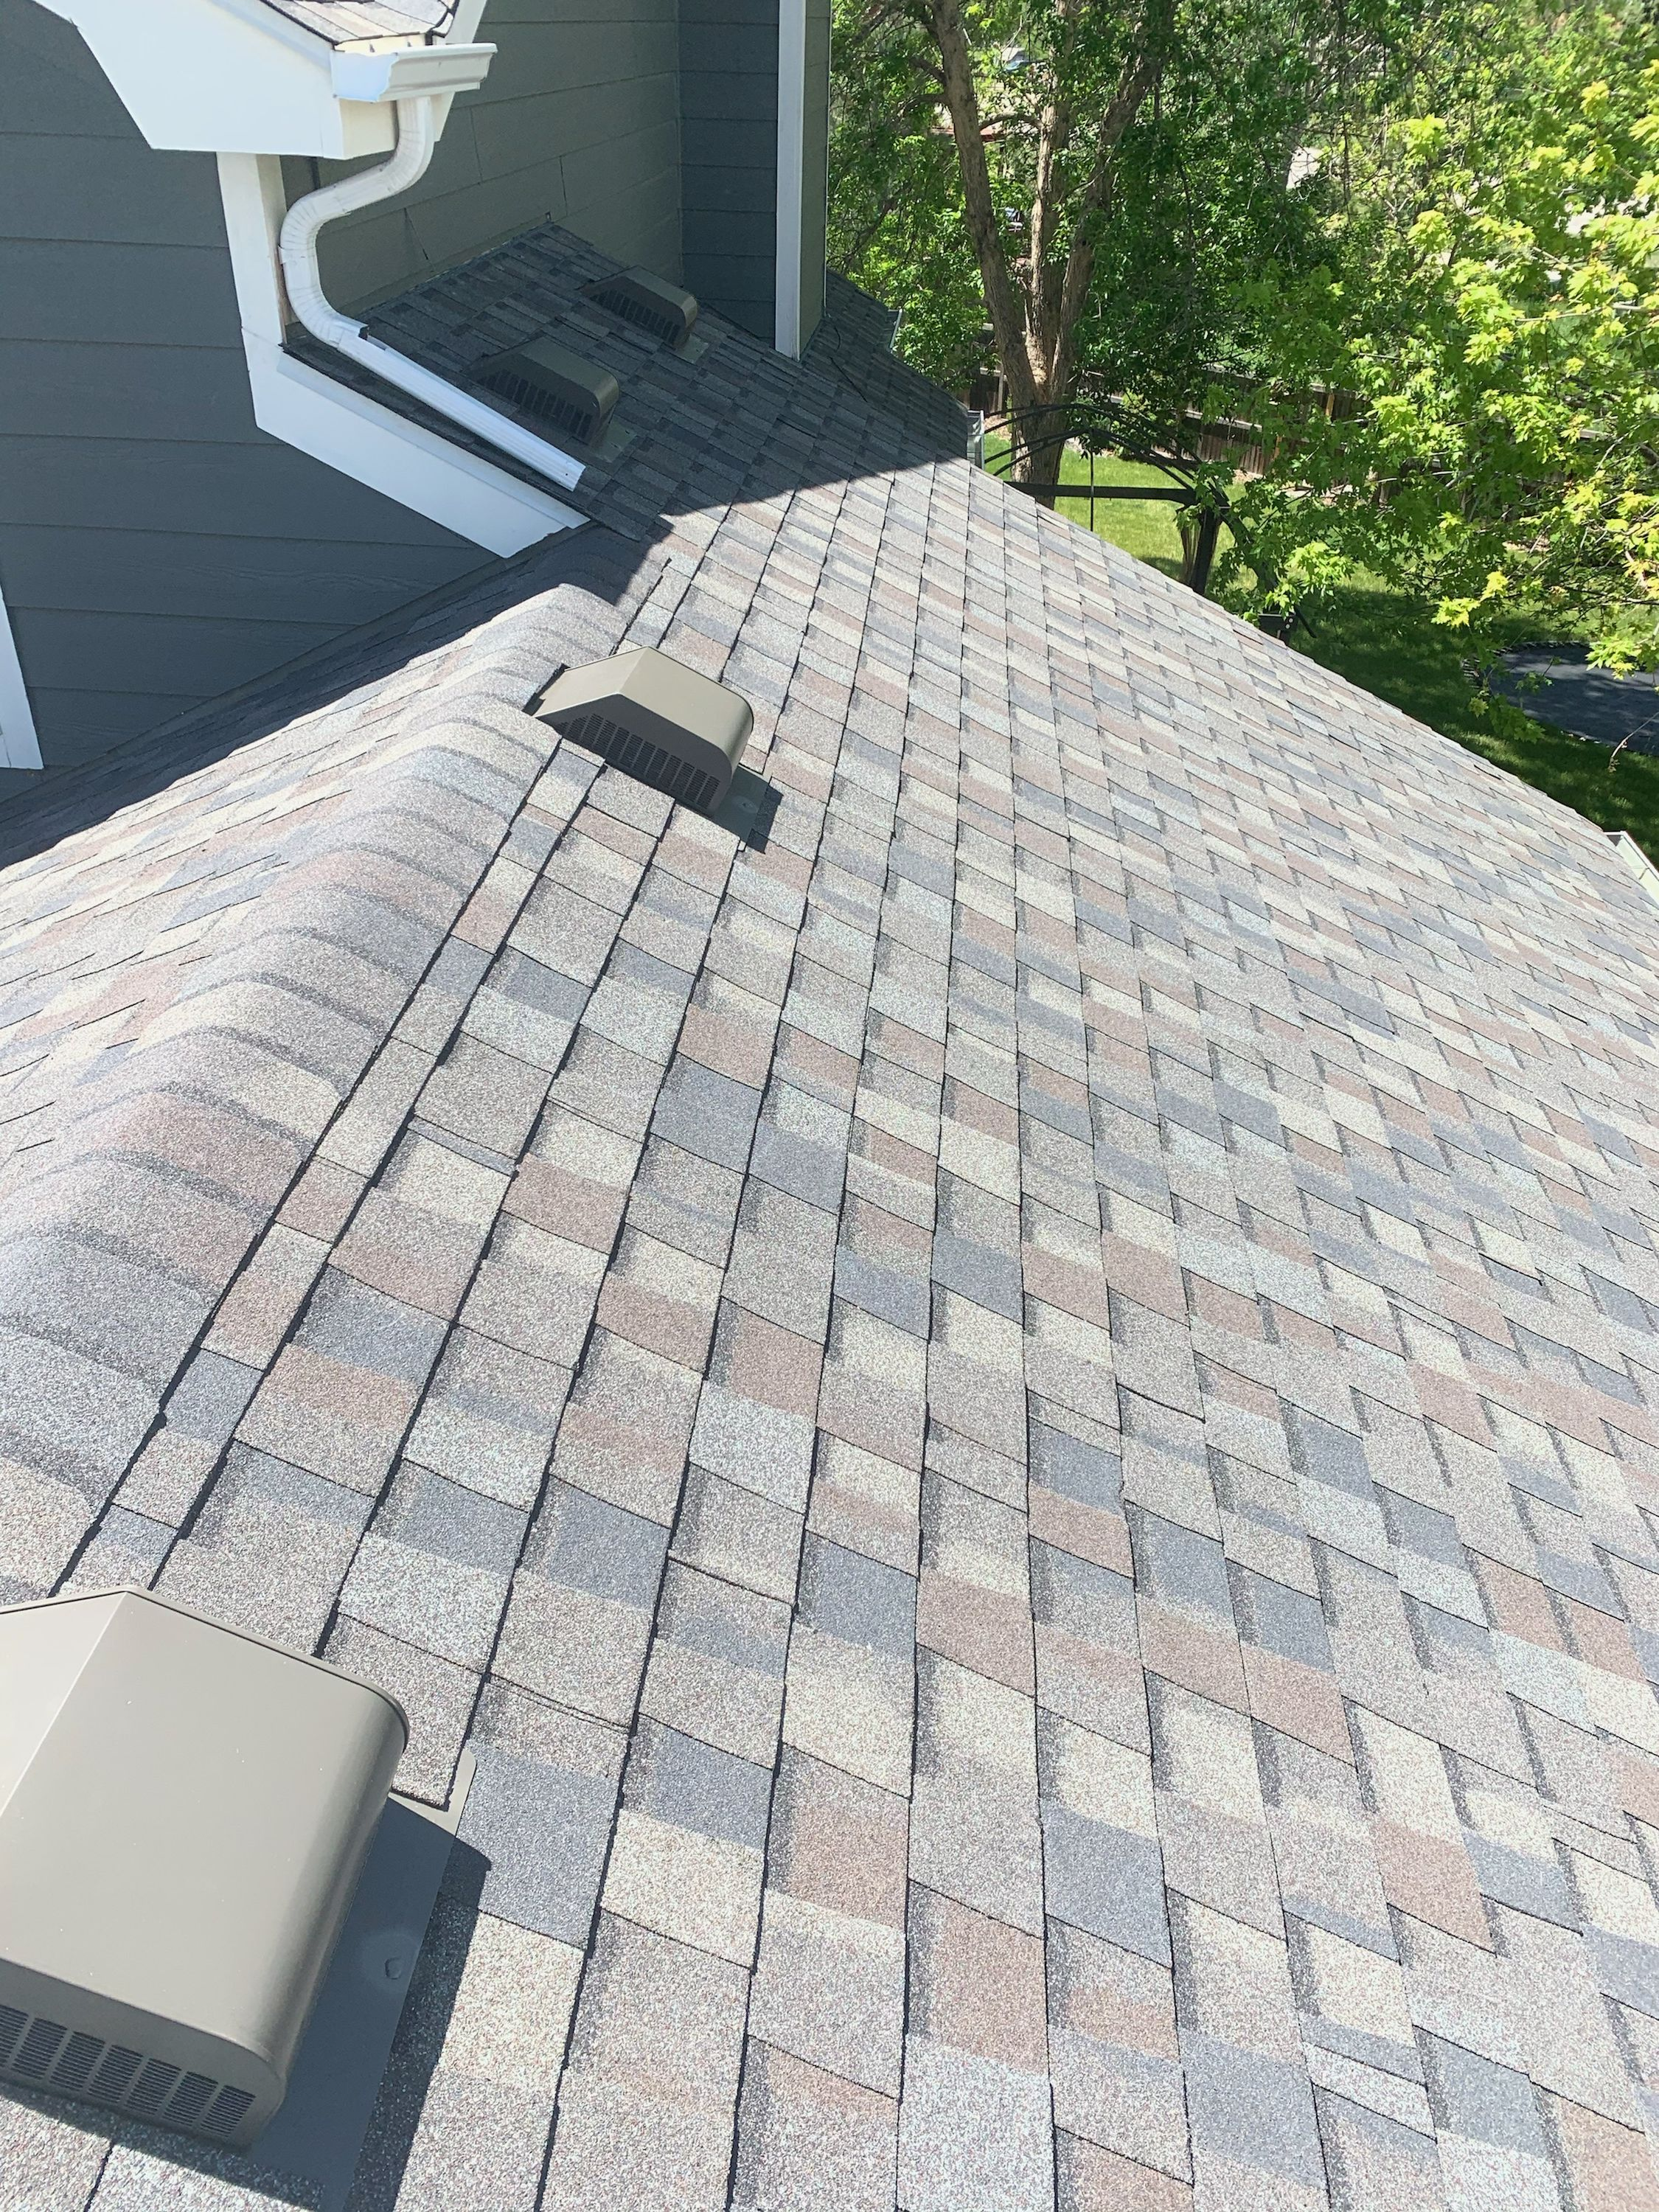 Certainteed Northgate Driftwood In 2020 Residential Roofing Certainteed Roofing Contractors